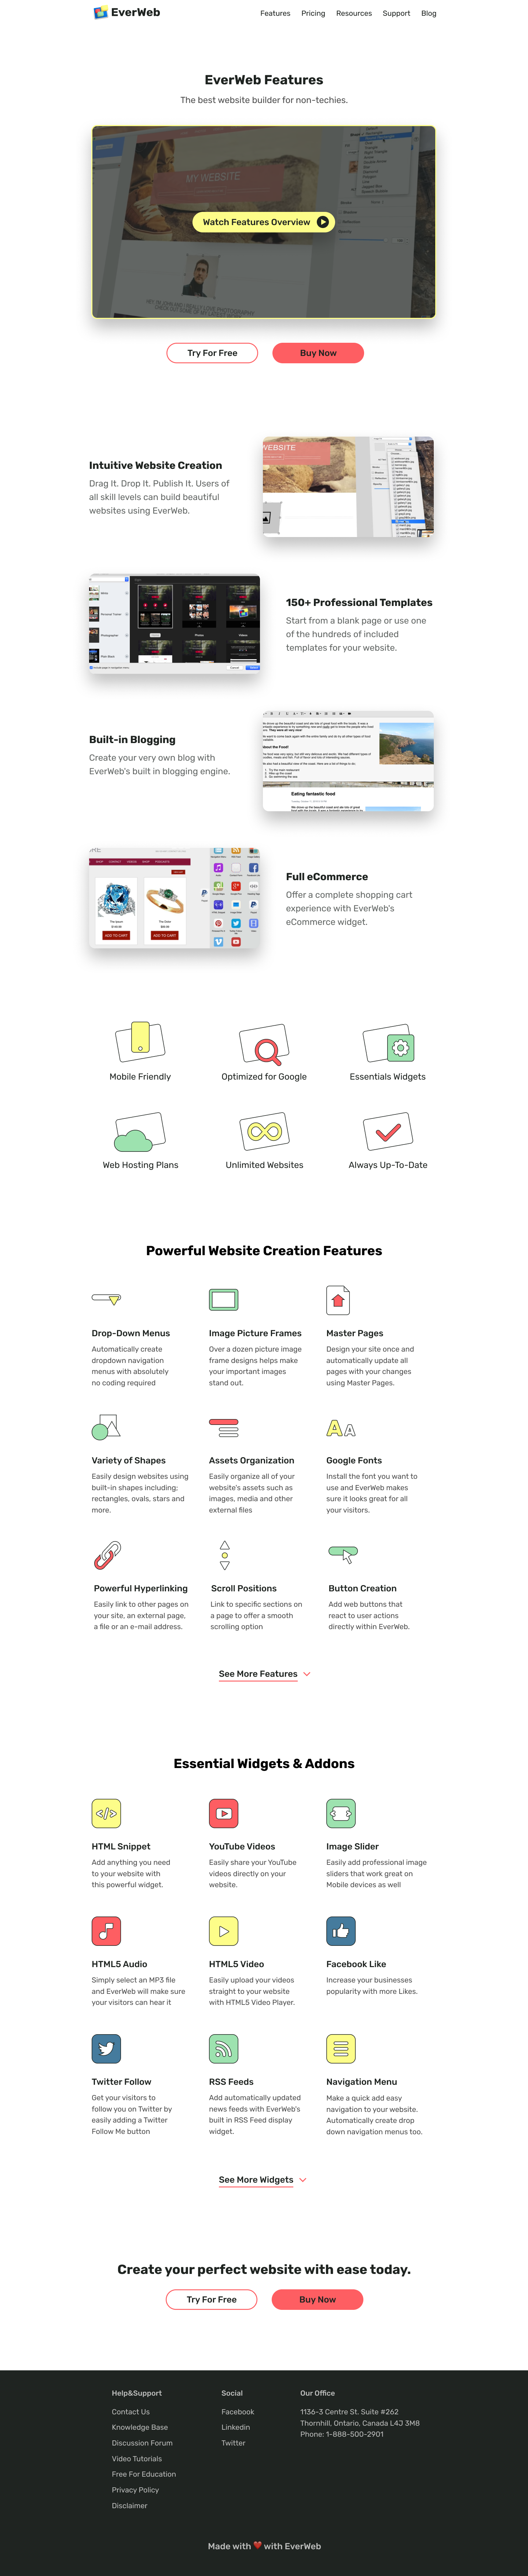 features page UI website redesign case study, landing page